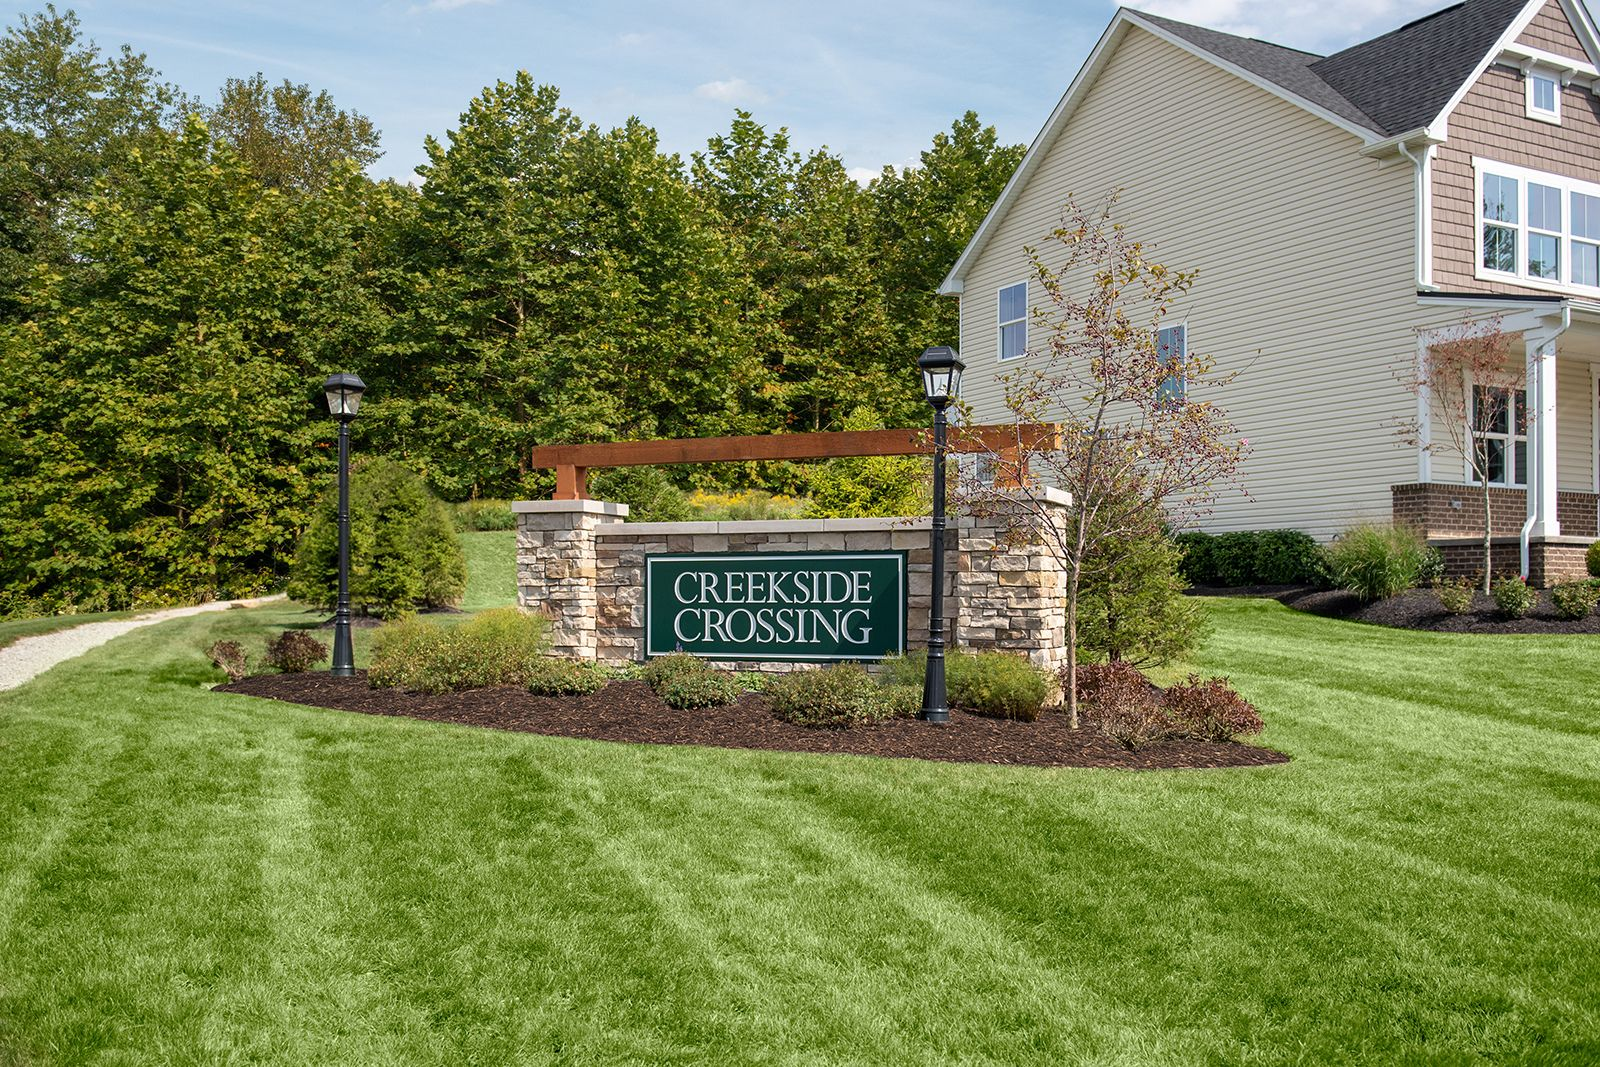 Welcome Home to Creekside Crossing:The only new luxury single-family homes in a convenient rural Washington Co. location with Canon McMillan Schools, a playground & homes with a 2 or 3-car garage.Schedule your appointment today!